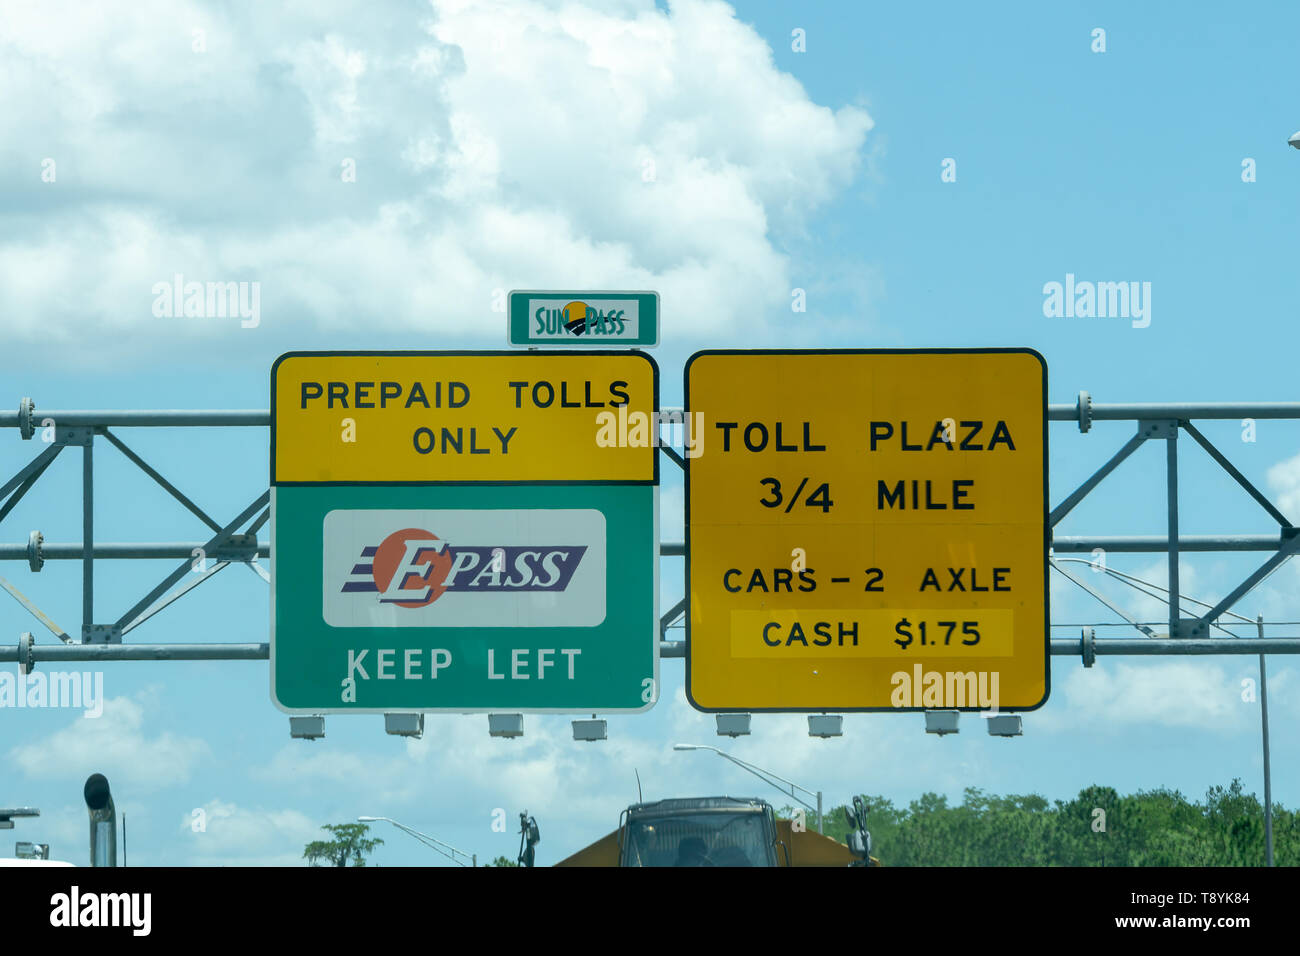 ORLANDO, USA. 8TH MAY 2019: Overhead road direction signs found on the approach to toll plaza's - Stock Image